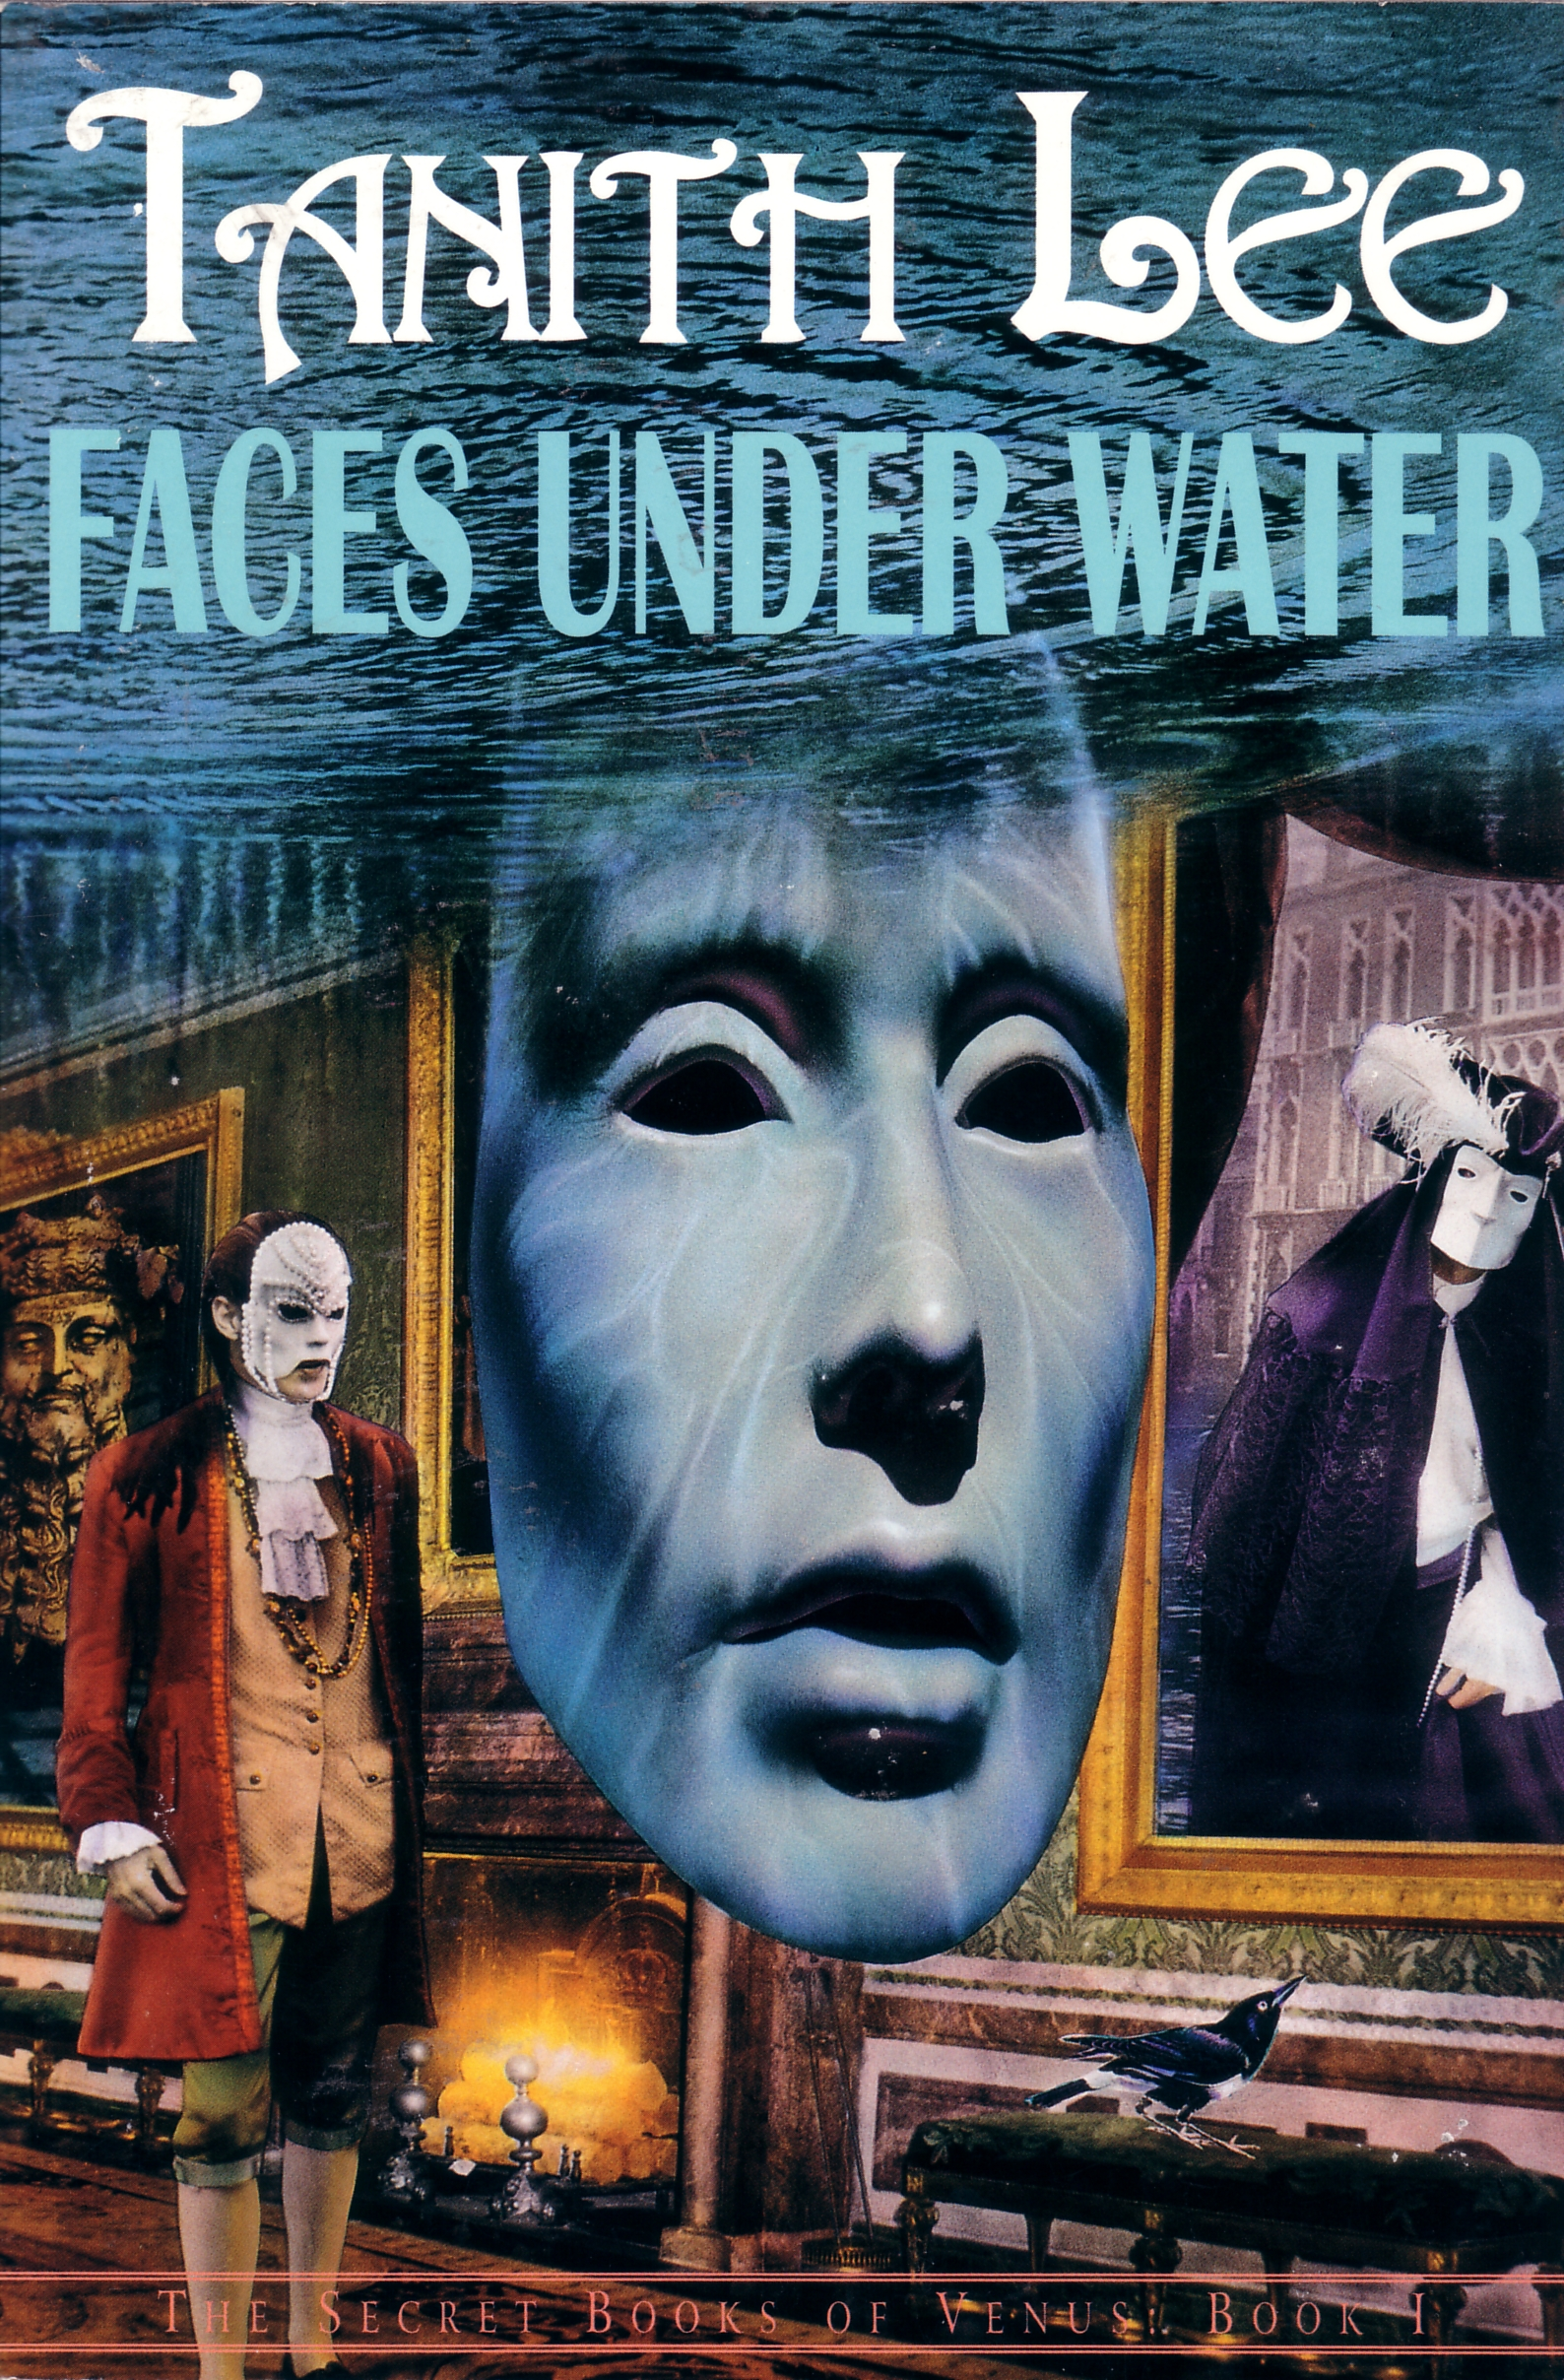 Faces Under Water